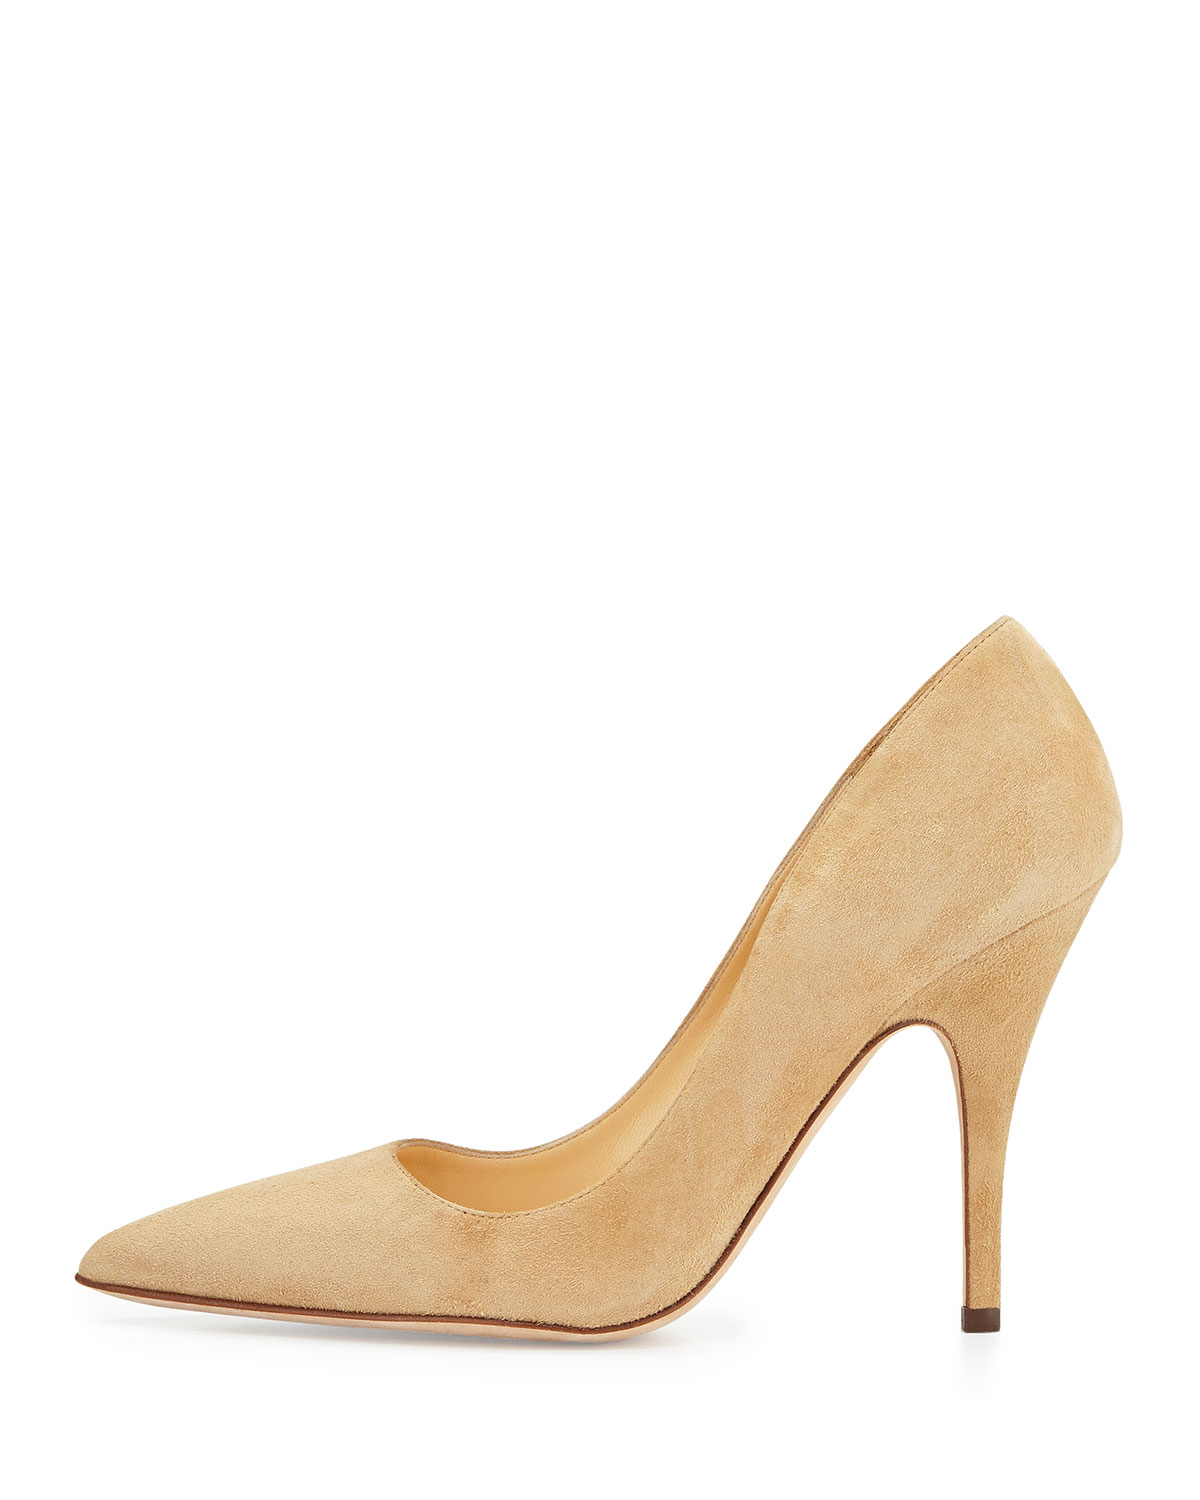 596a957ddfd1 Gallery. Previously sold at  Neiman Marcus · Women s Pointed Toe Pumps  Women s Kate Spade Licorice ...